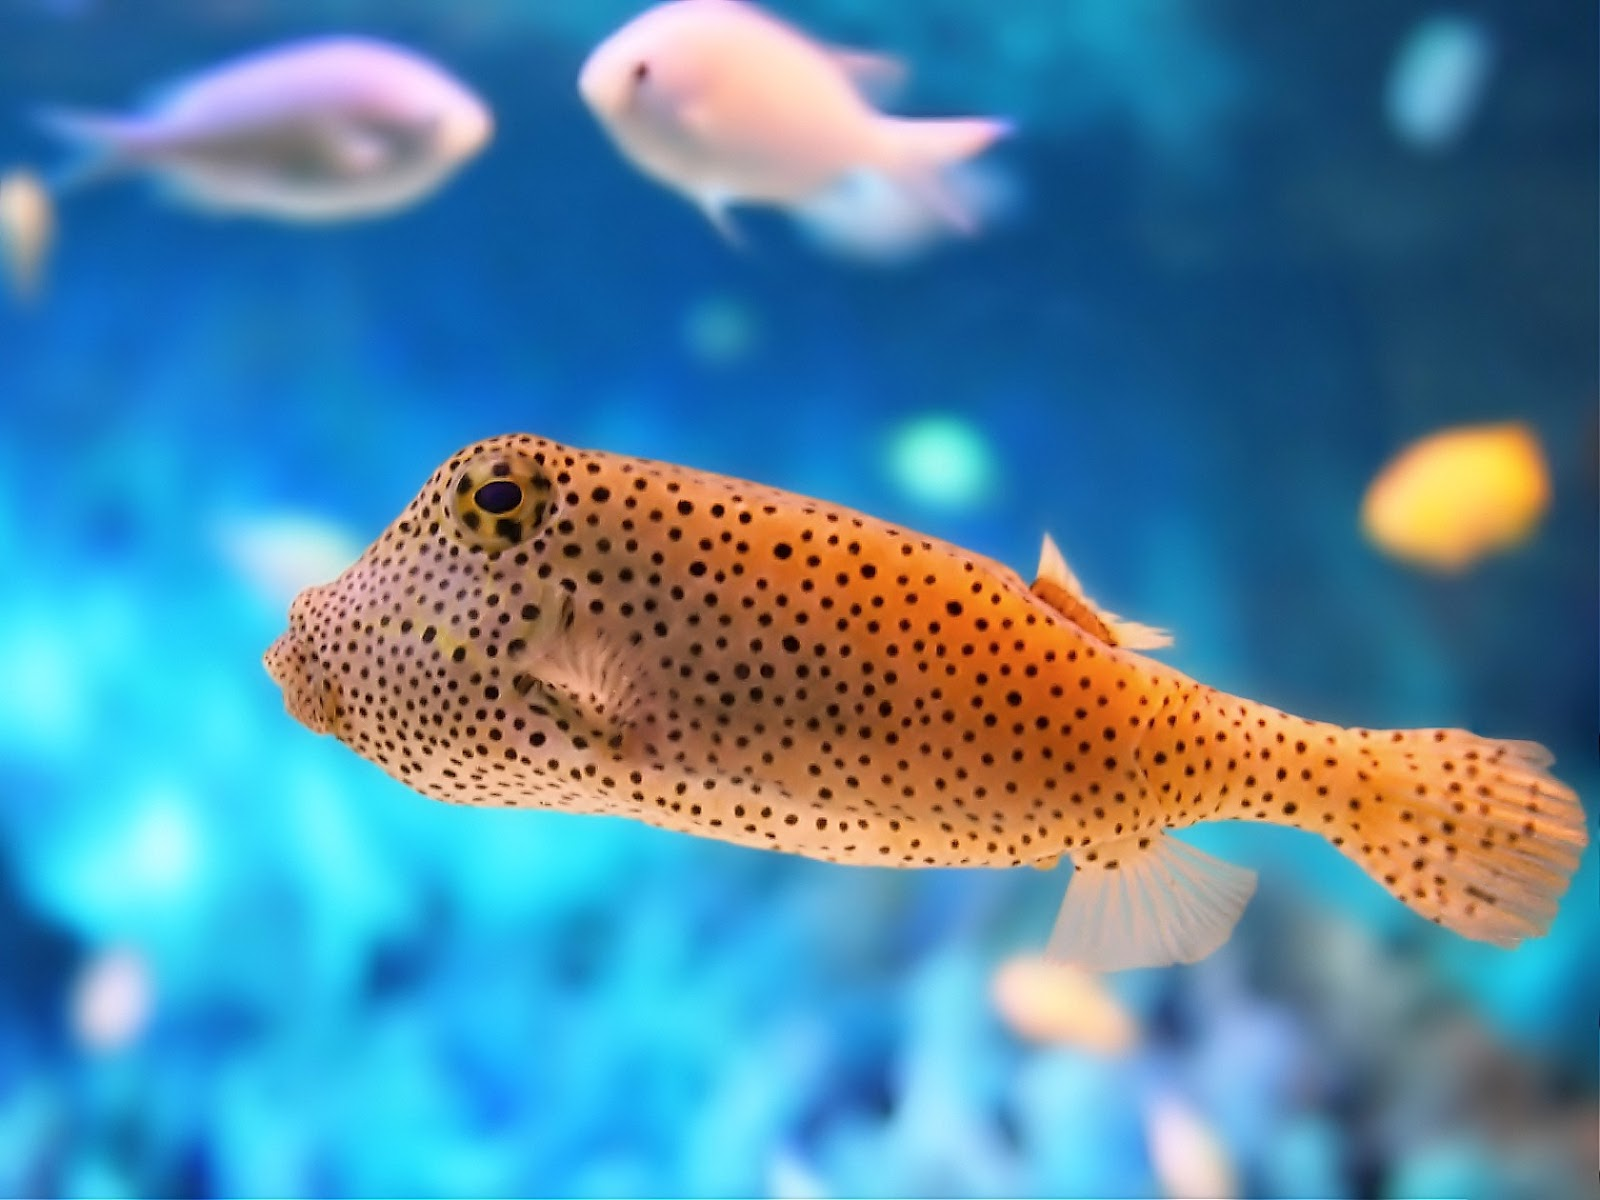 Fish hd wallpapers amaxing for What fish is this